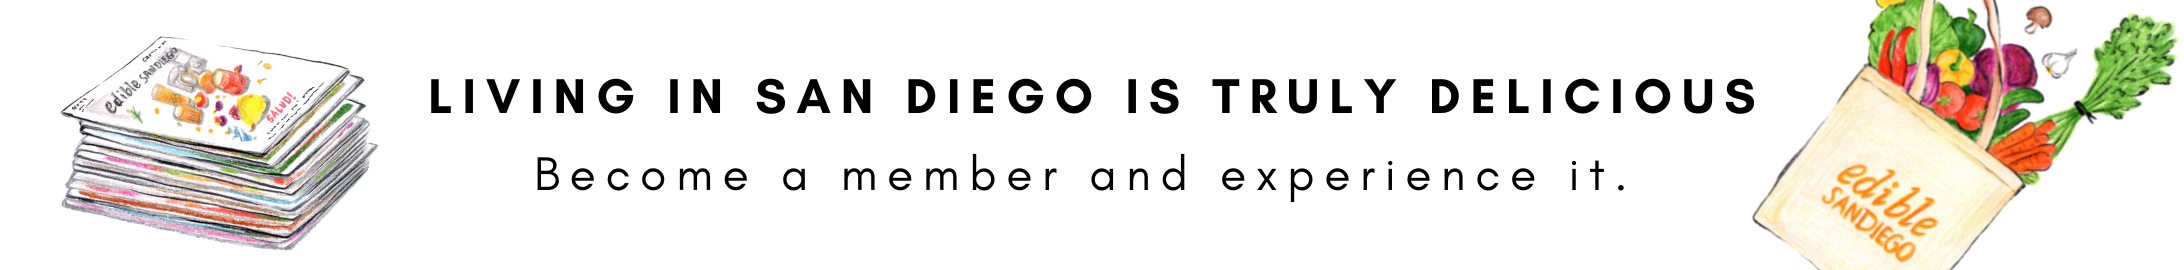 Fall 2021 Membership Campaign (San Diego is delicious)